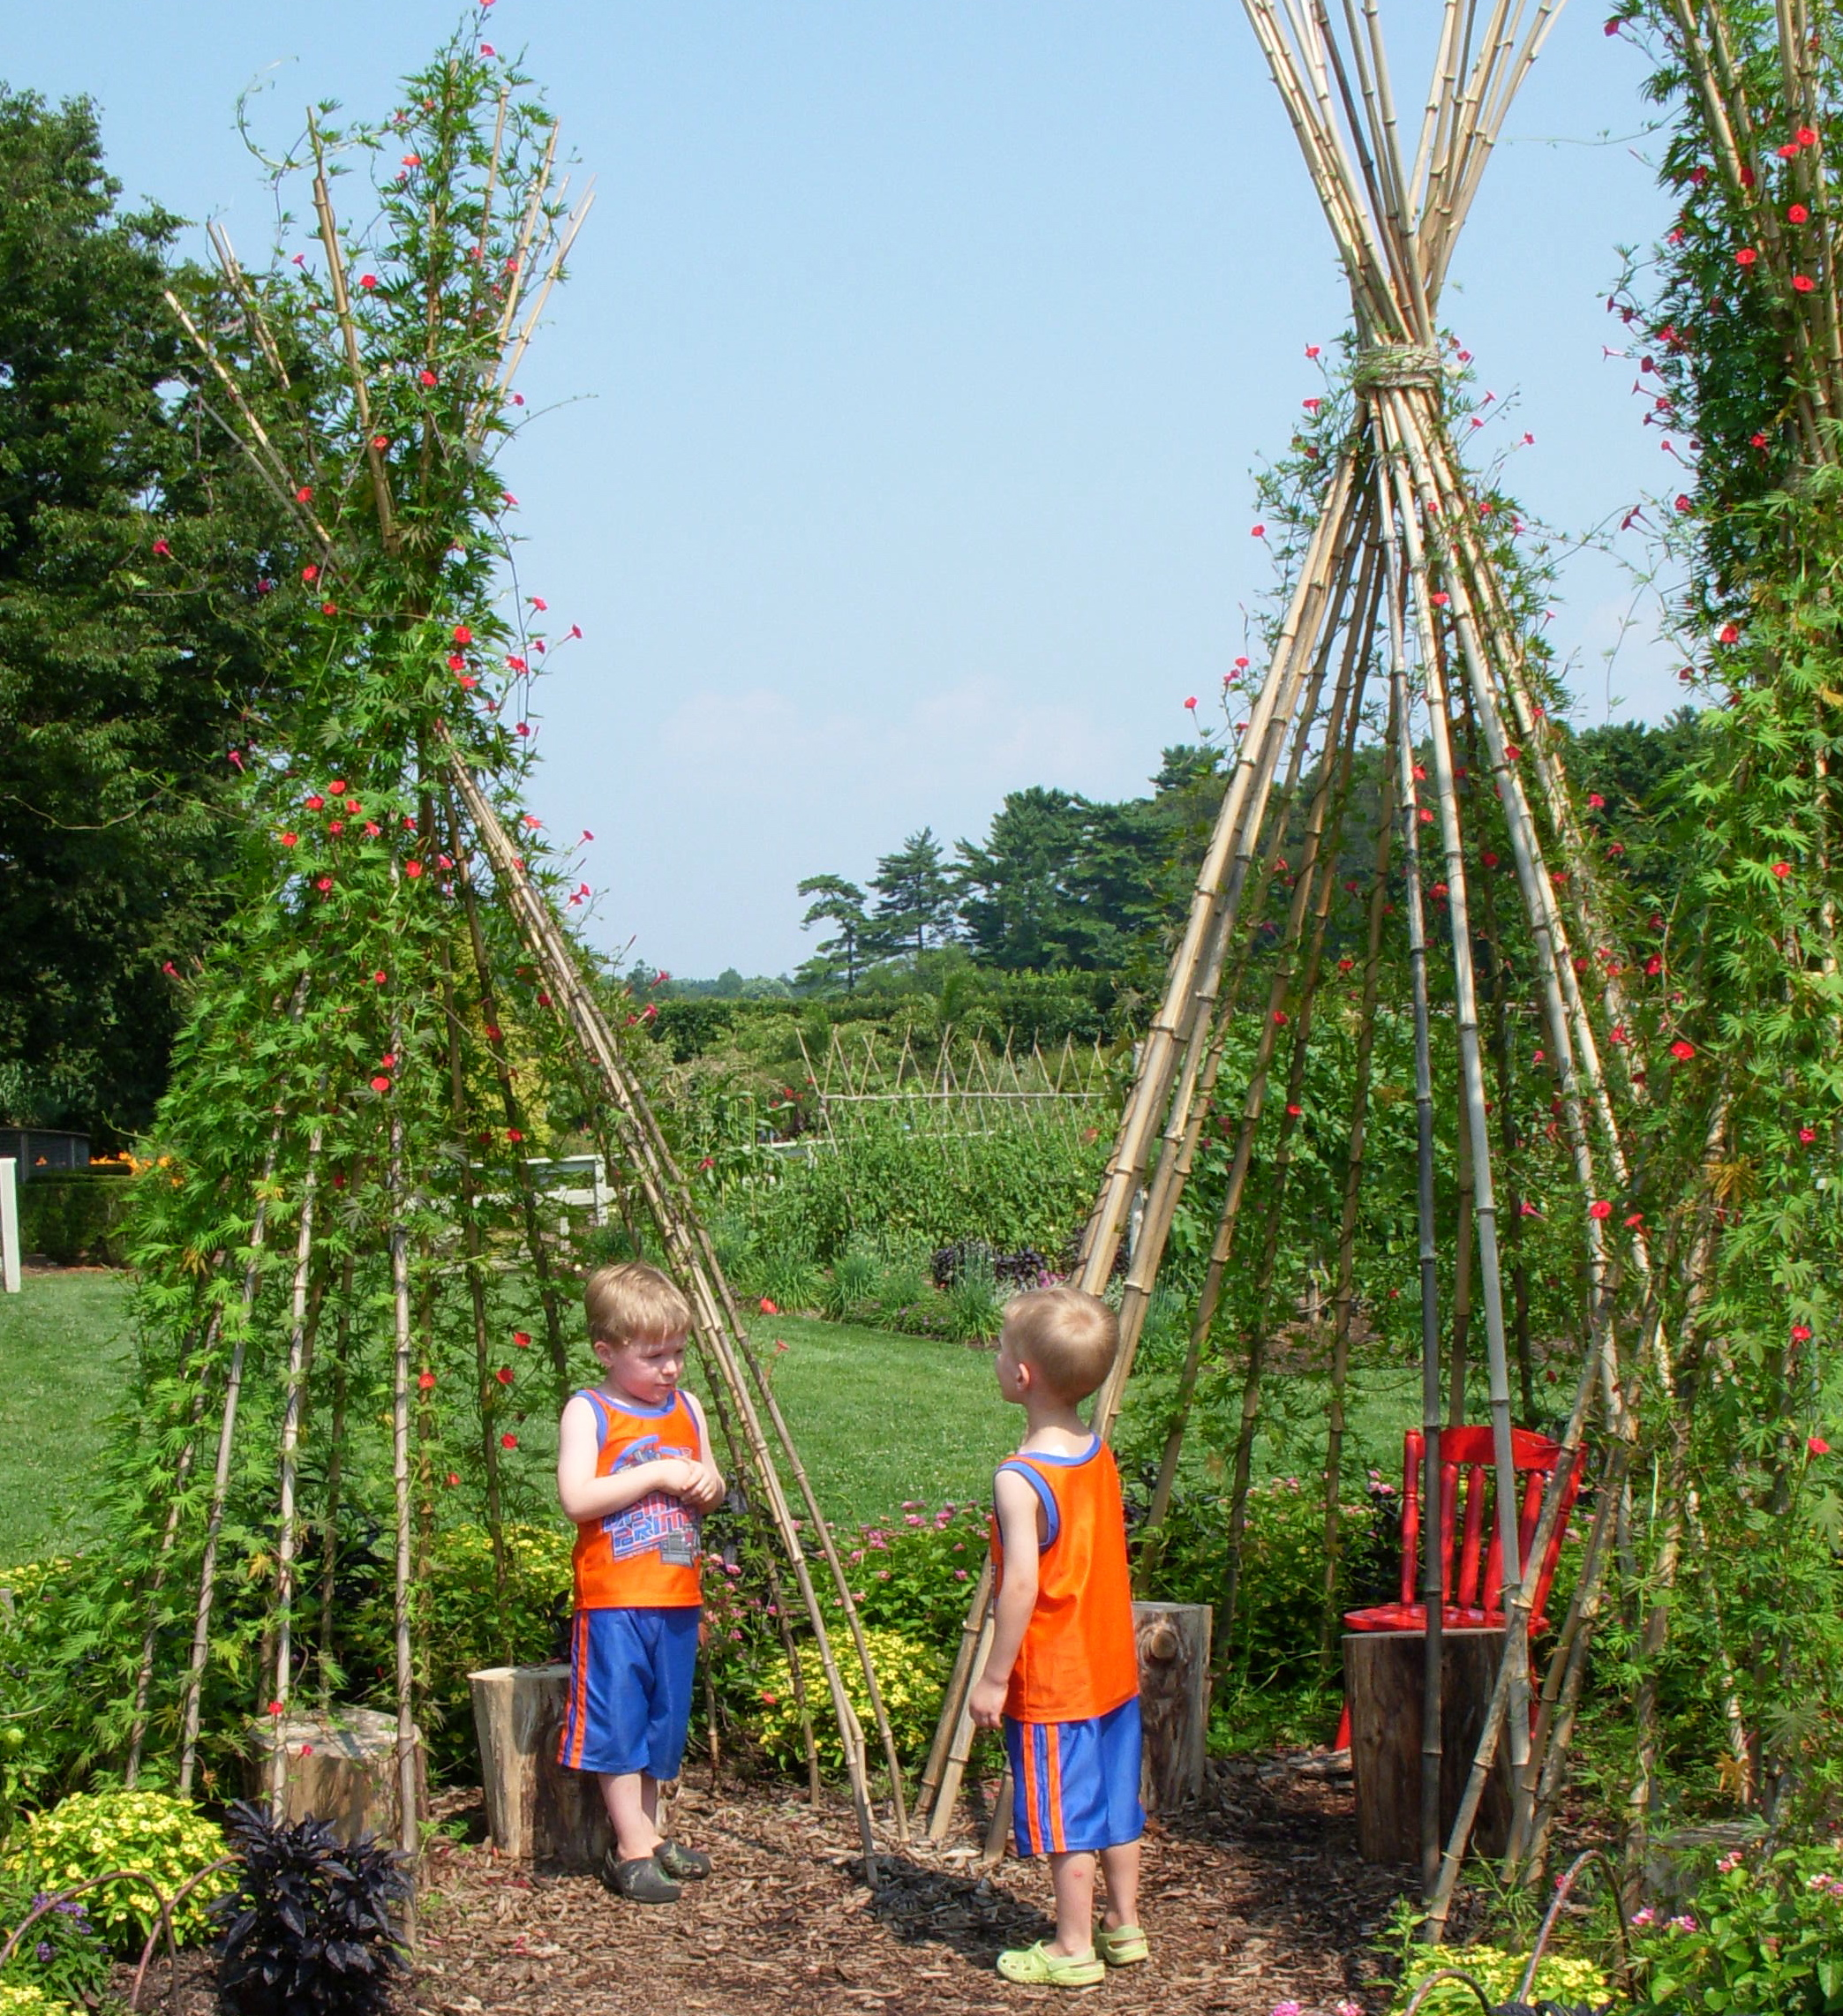 Best 25 Teepees Ideas On Pinterest: Kids Gardening: Build A Bean Teepee